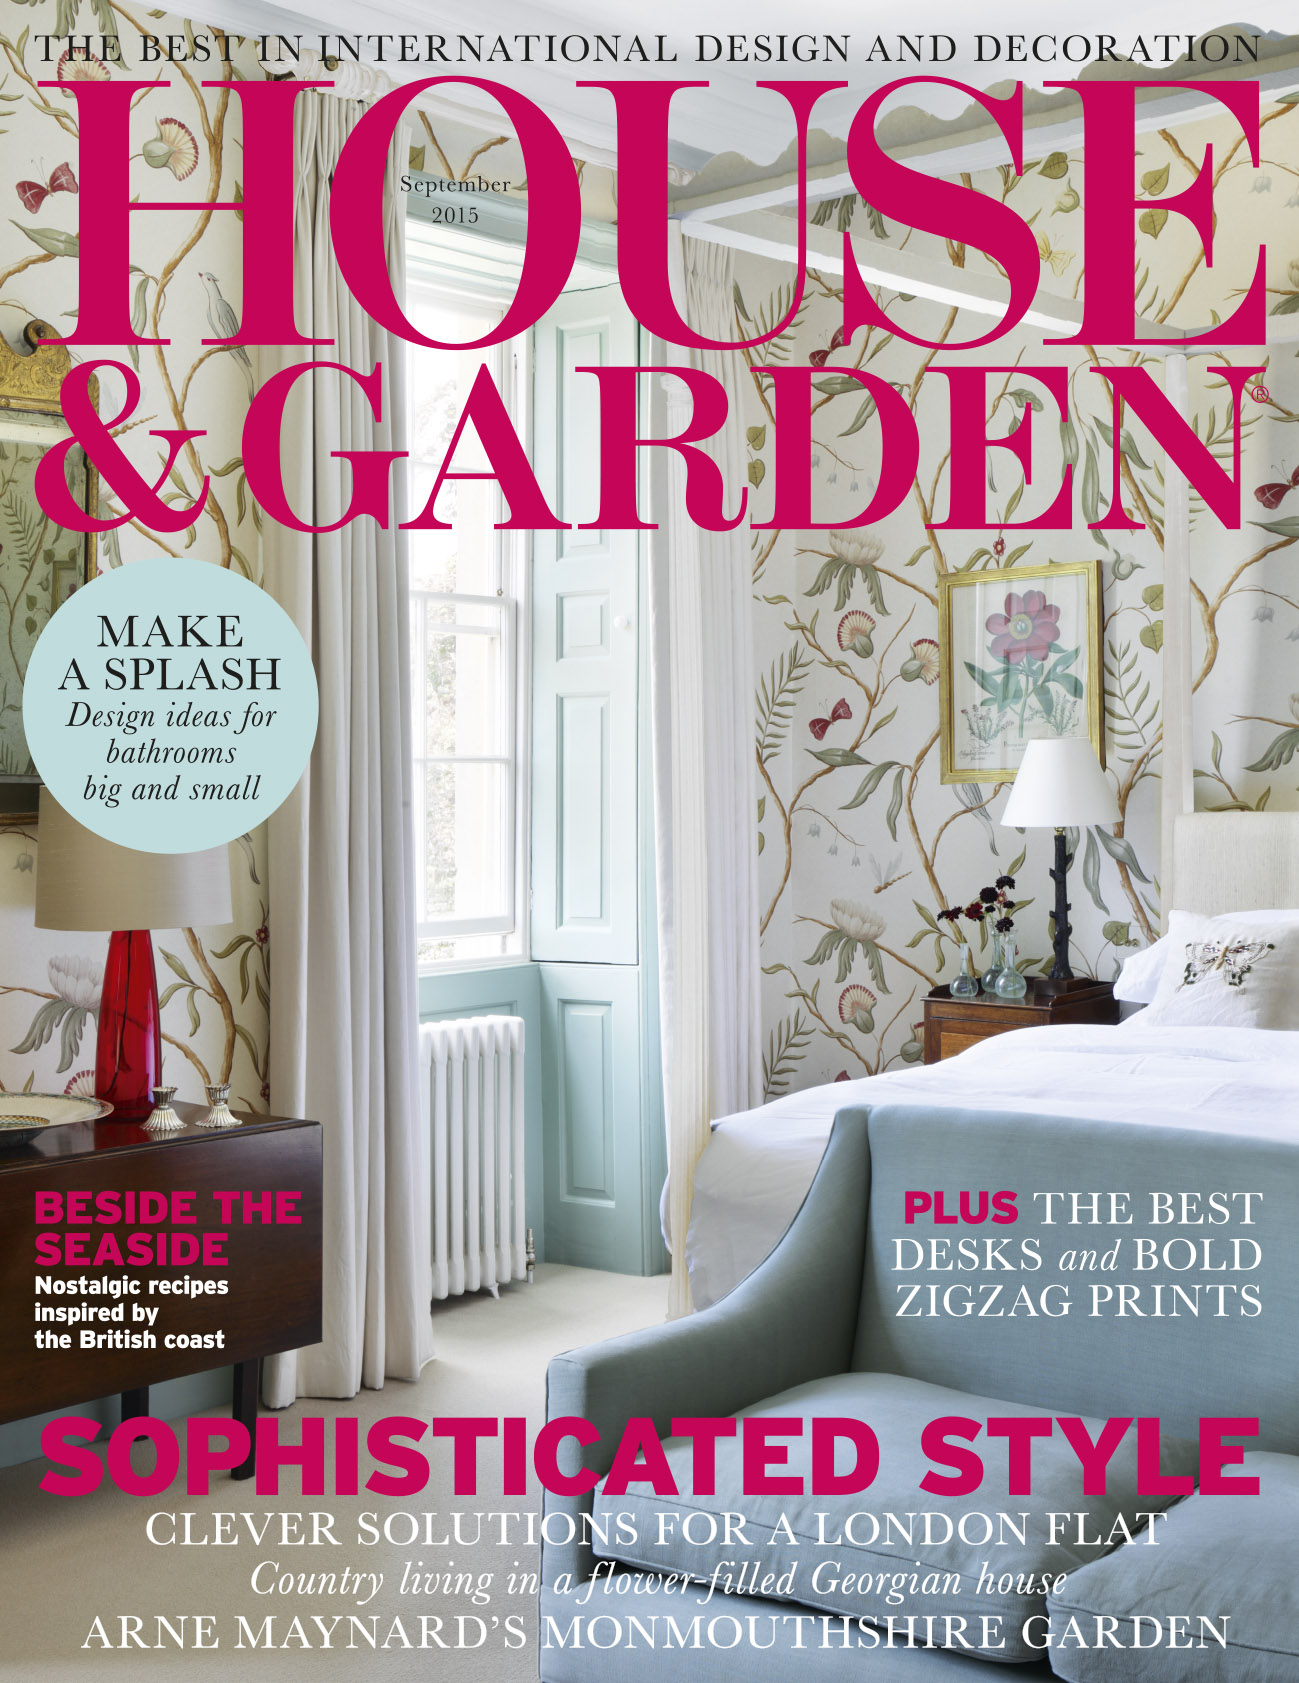 Maak Feature in House and Garden Magazine